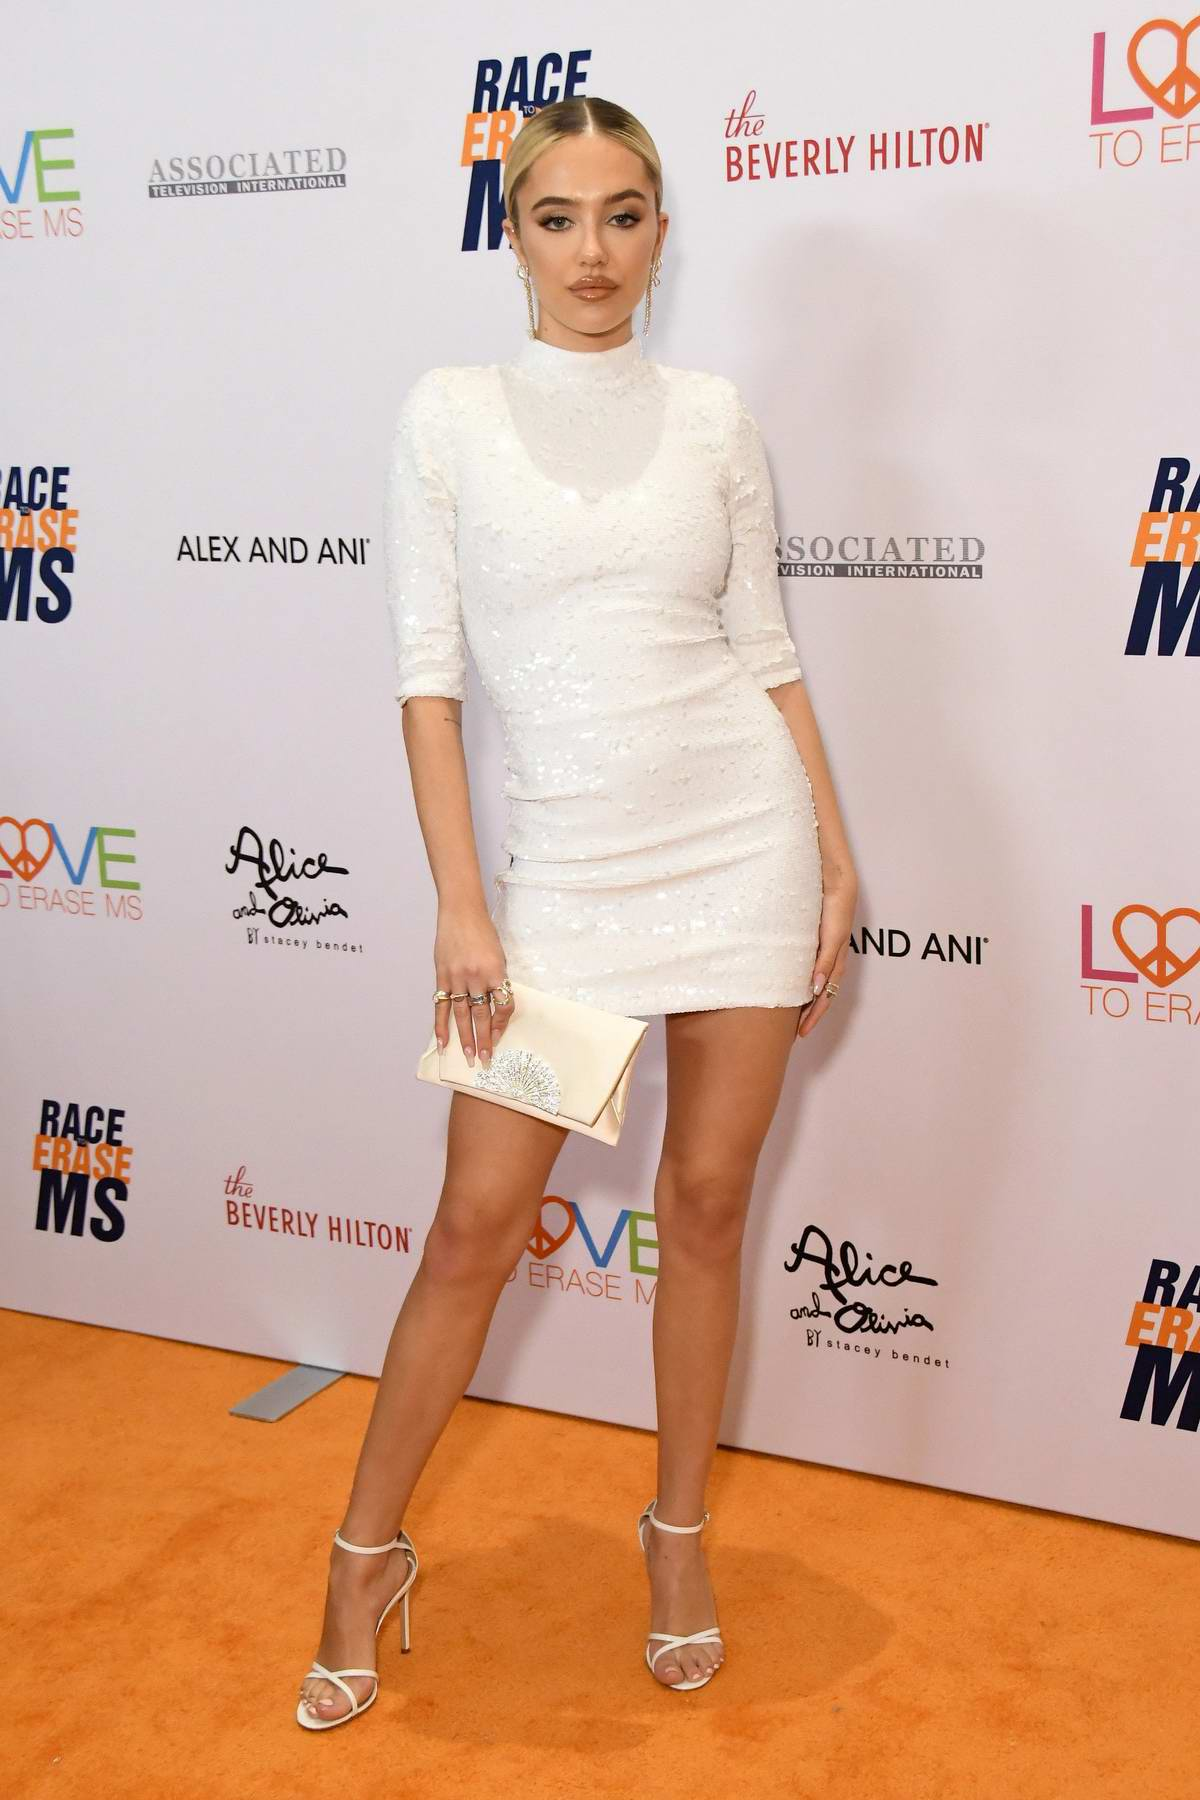 Delilah Hamlin attends the 26th Annual Race to Erase MS GALA held at the Beverly Hilton Hotel in Beverly Hills, Los Angeles